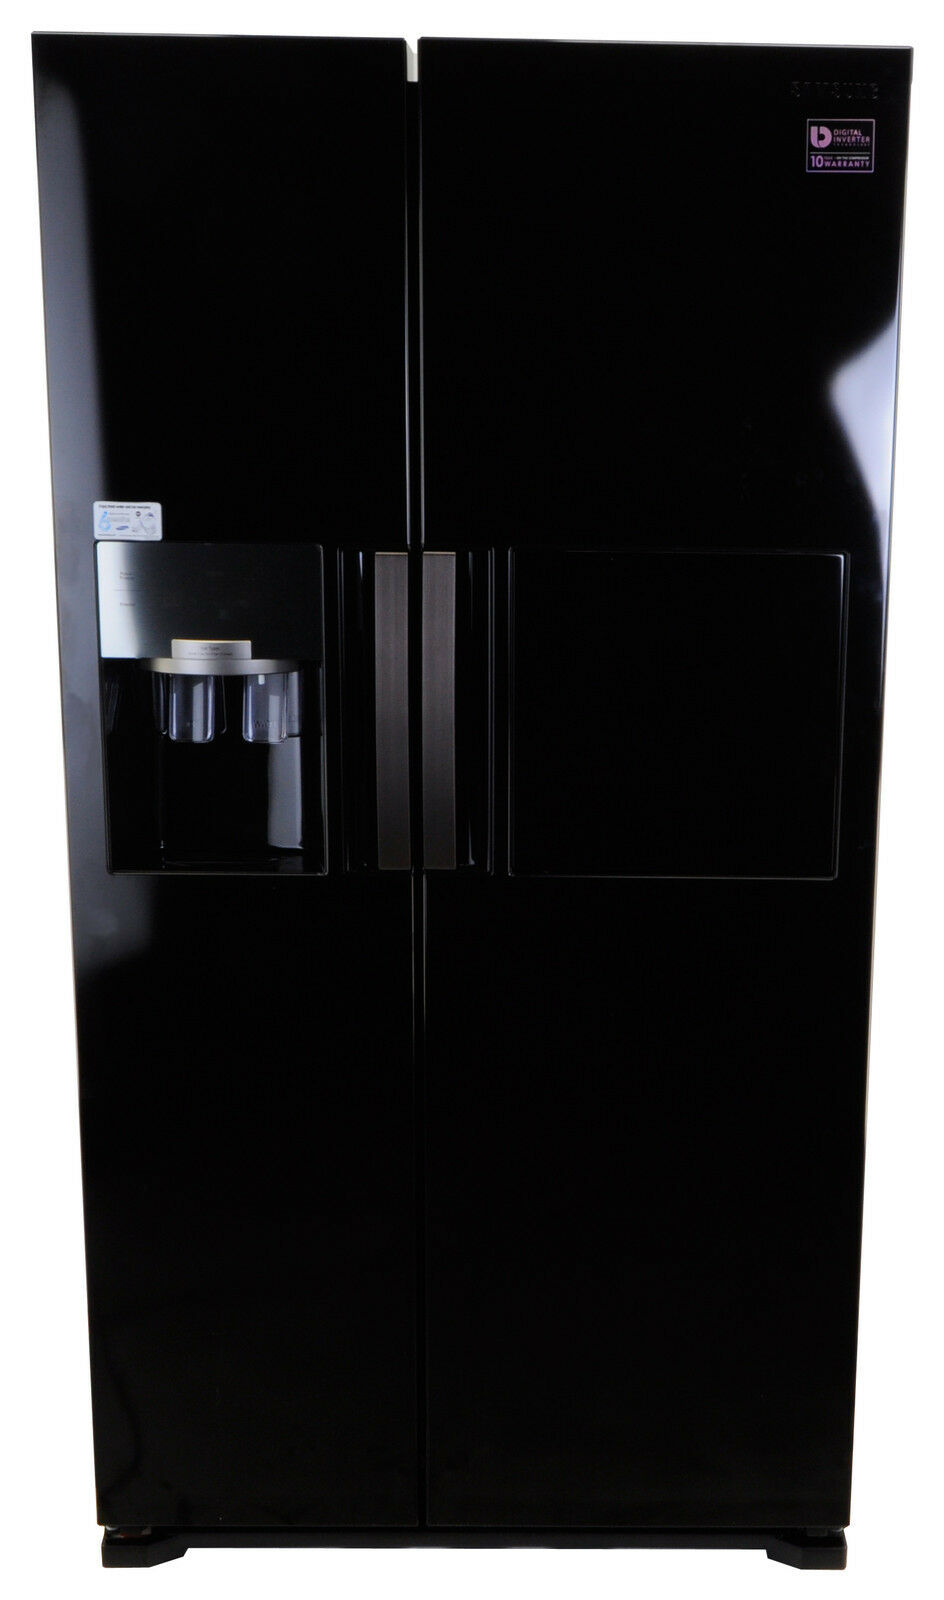 samsung rs7778fhcbc schwarz k hl gefrierkombination a 543 liter eur picclick it. Black Bedroom Furniture Sets. Home Design Ideas